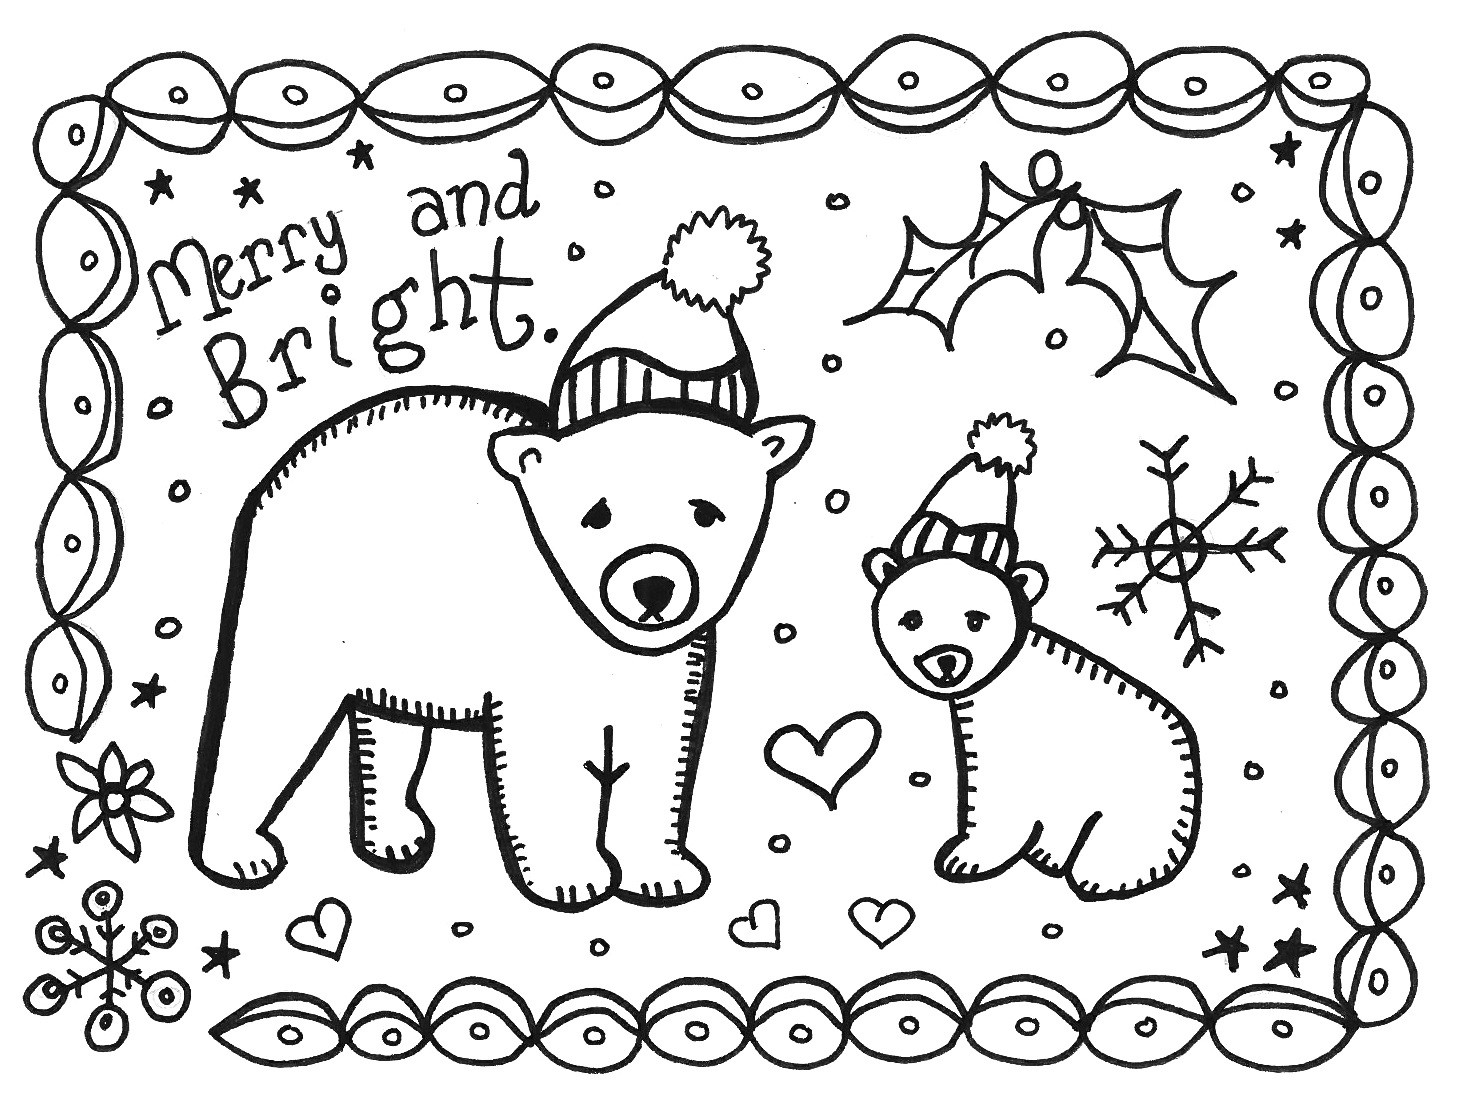 Pictures to color in - Printable Christmas Cards To Color